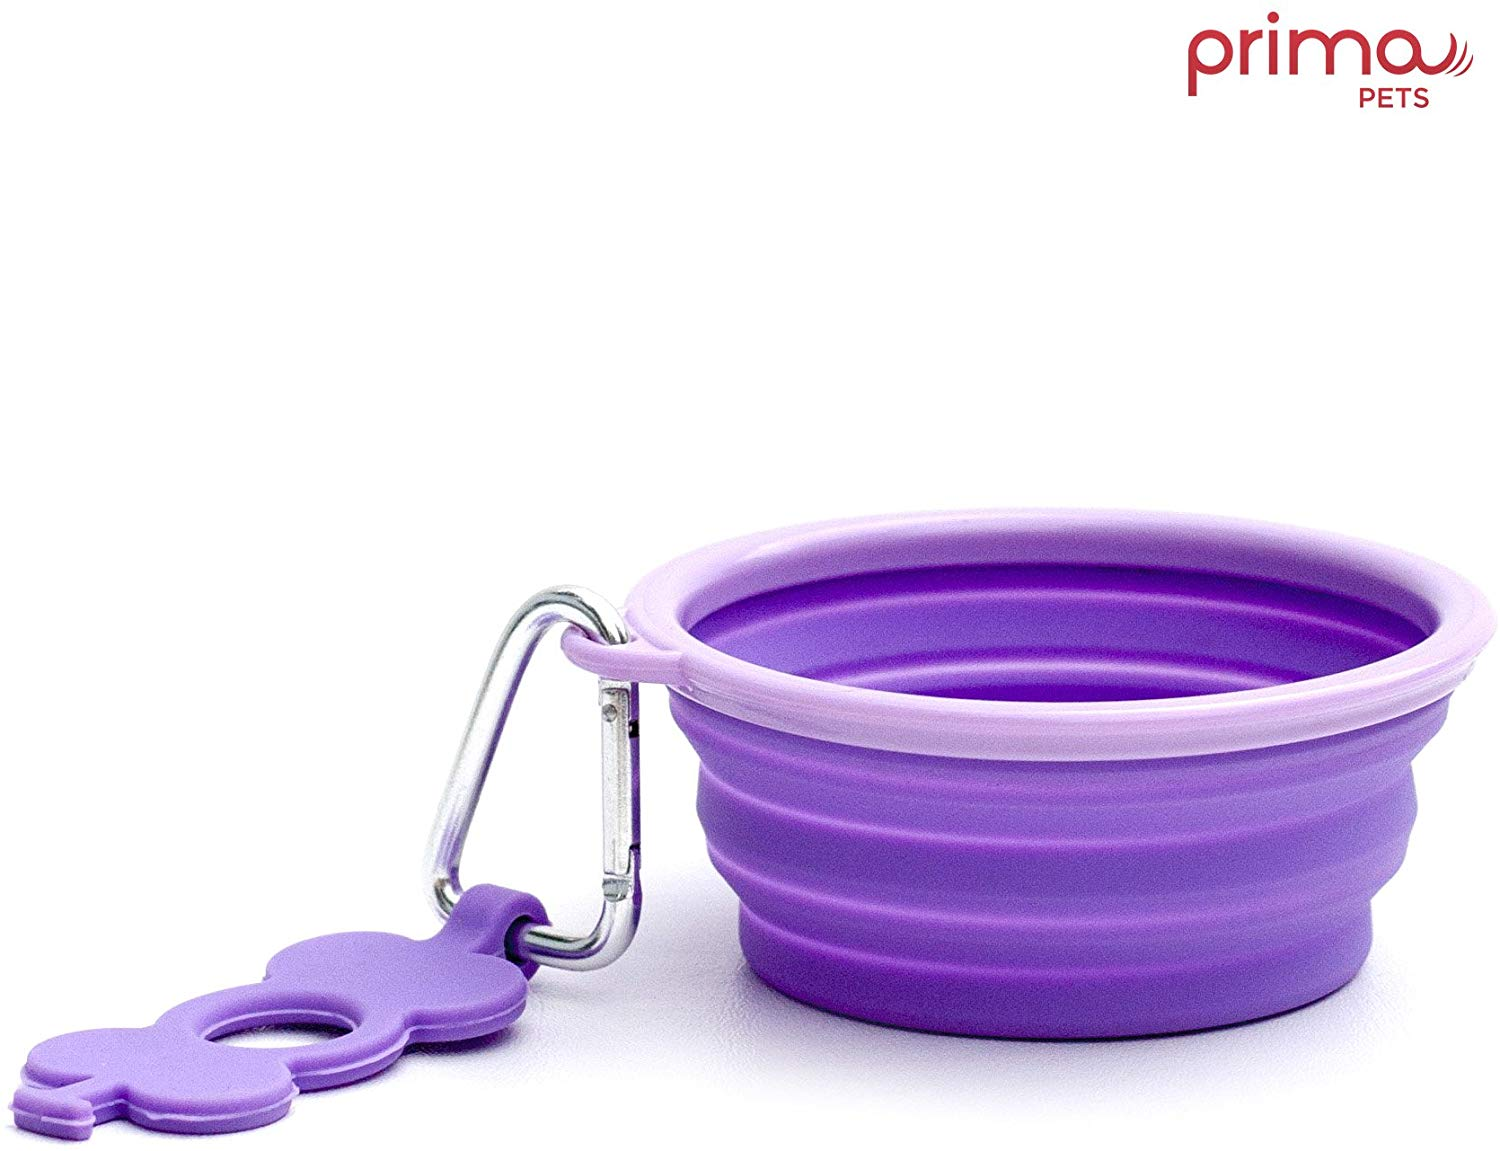 Prima Pets Collapsible Silicone Food & Water Travel Bowl with Clip for Dog and Cat